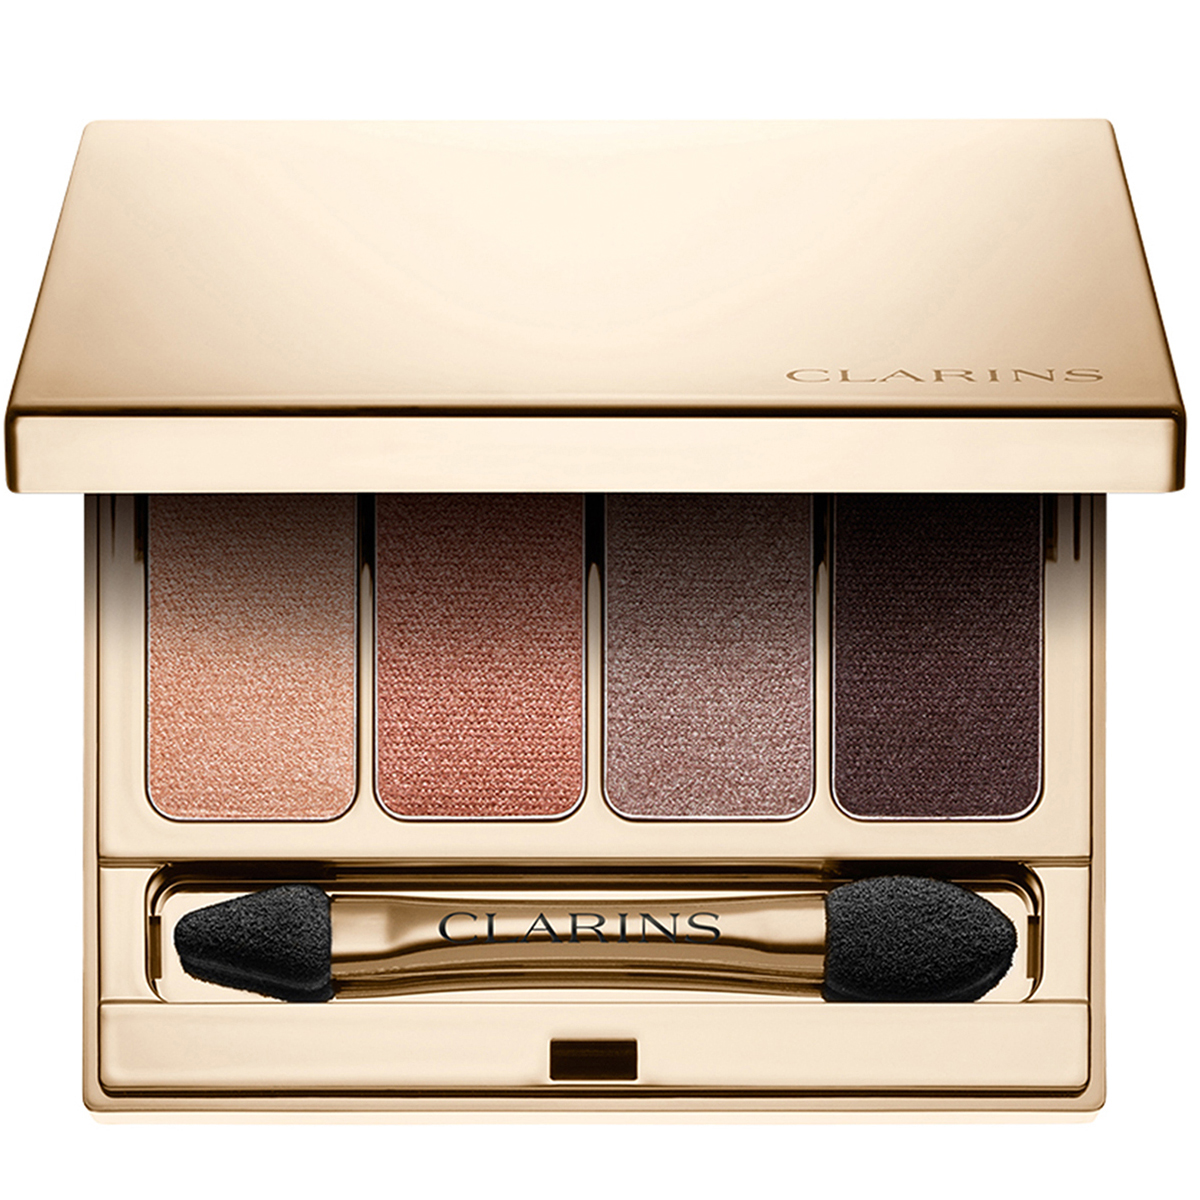 Clarins 4 Colour Eyeshadow Palette 01 Nude